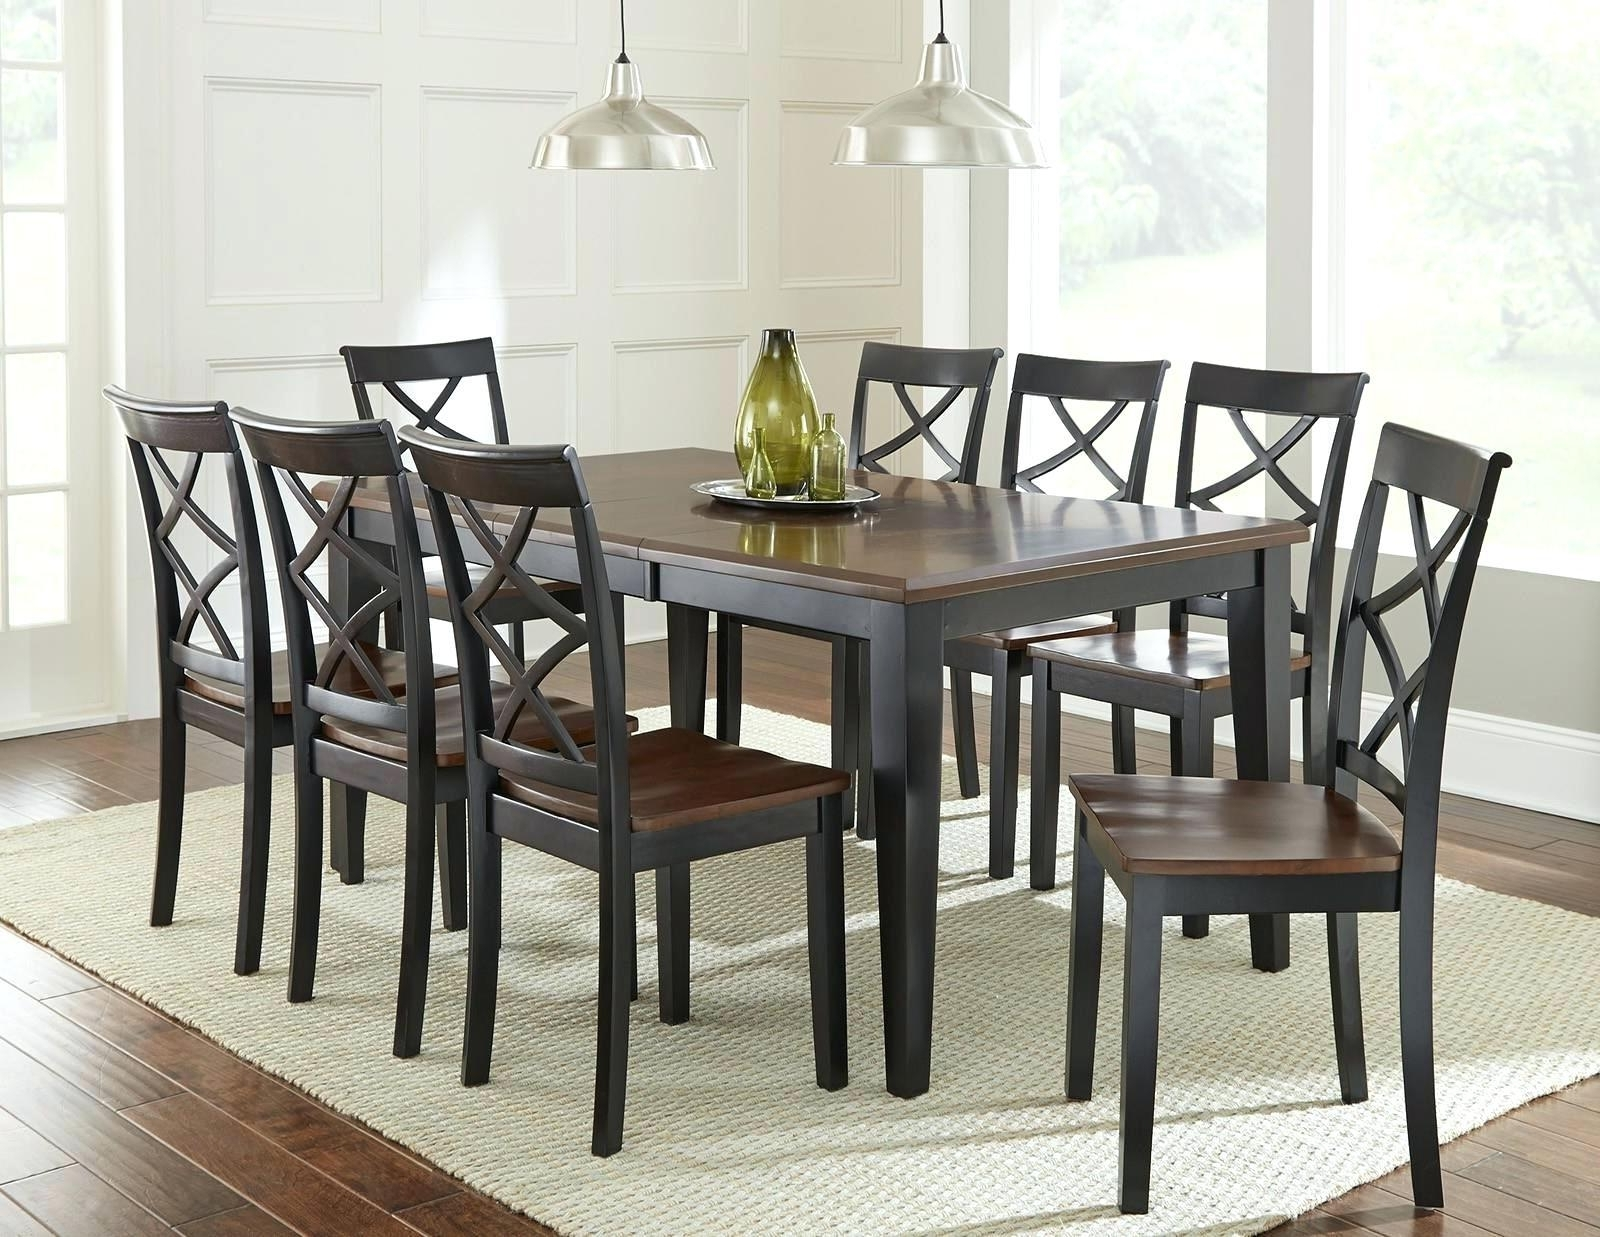 Chapleau Ii 9 Piece Extension Dining Table Sets Throughout Well Known Cheery Caira Piece Extension Set Back Chairs Caira Piece Extension (View 10 of 25)